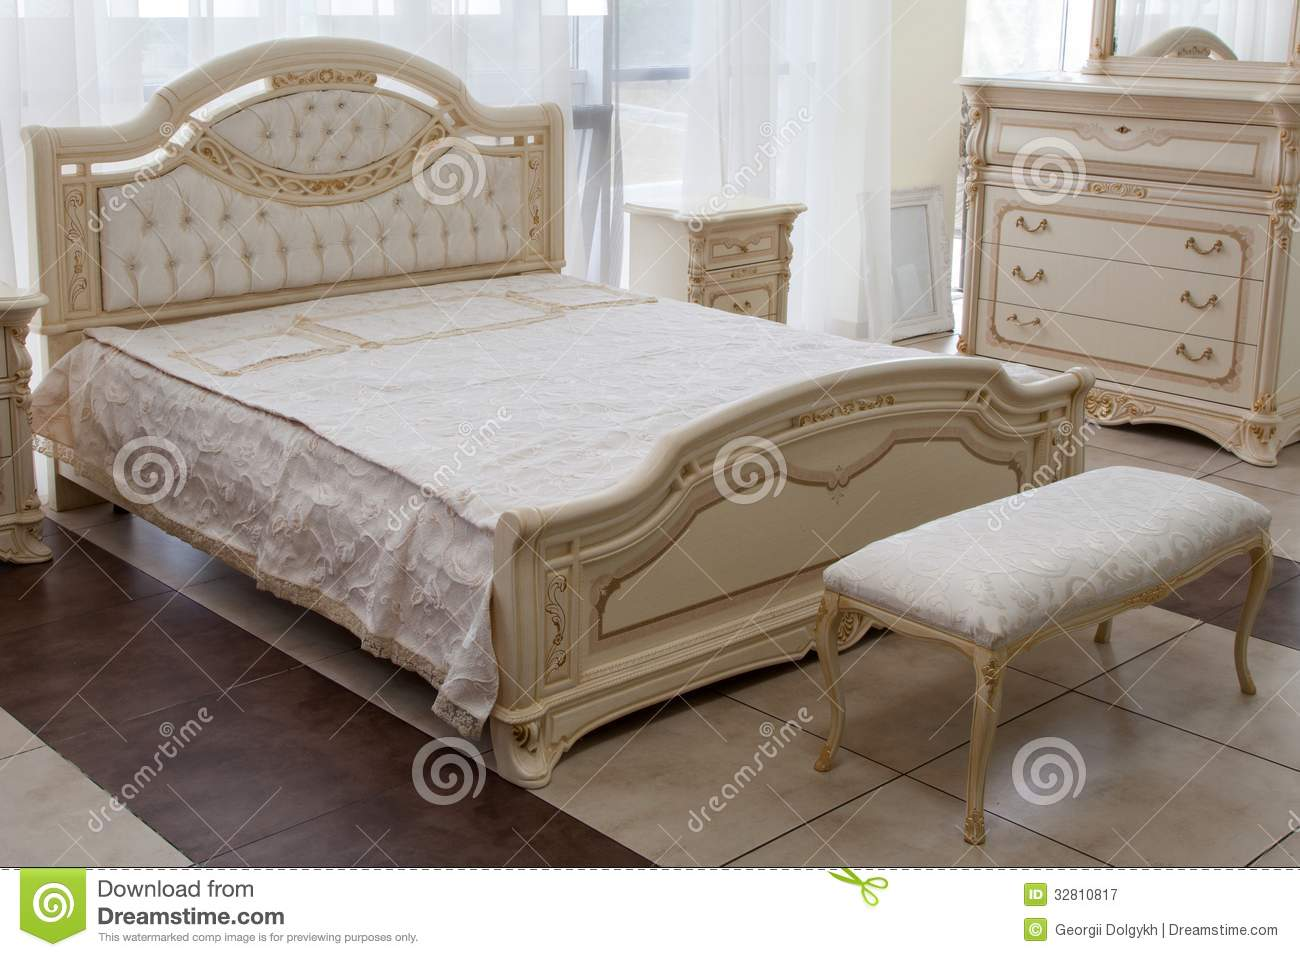 Awesome chambre a coucher royal italy images design for Chambre a coucher style provencal